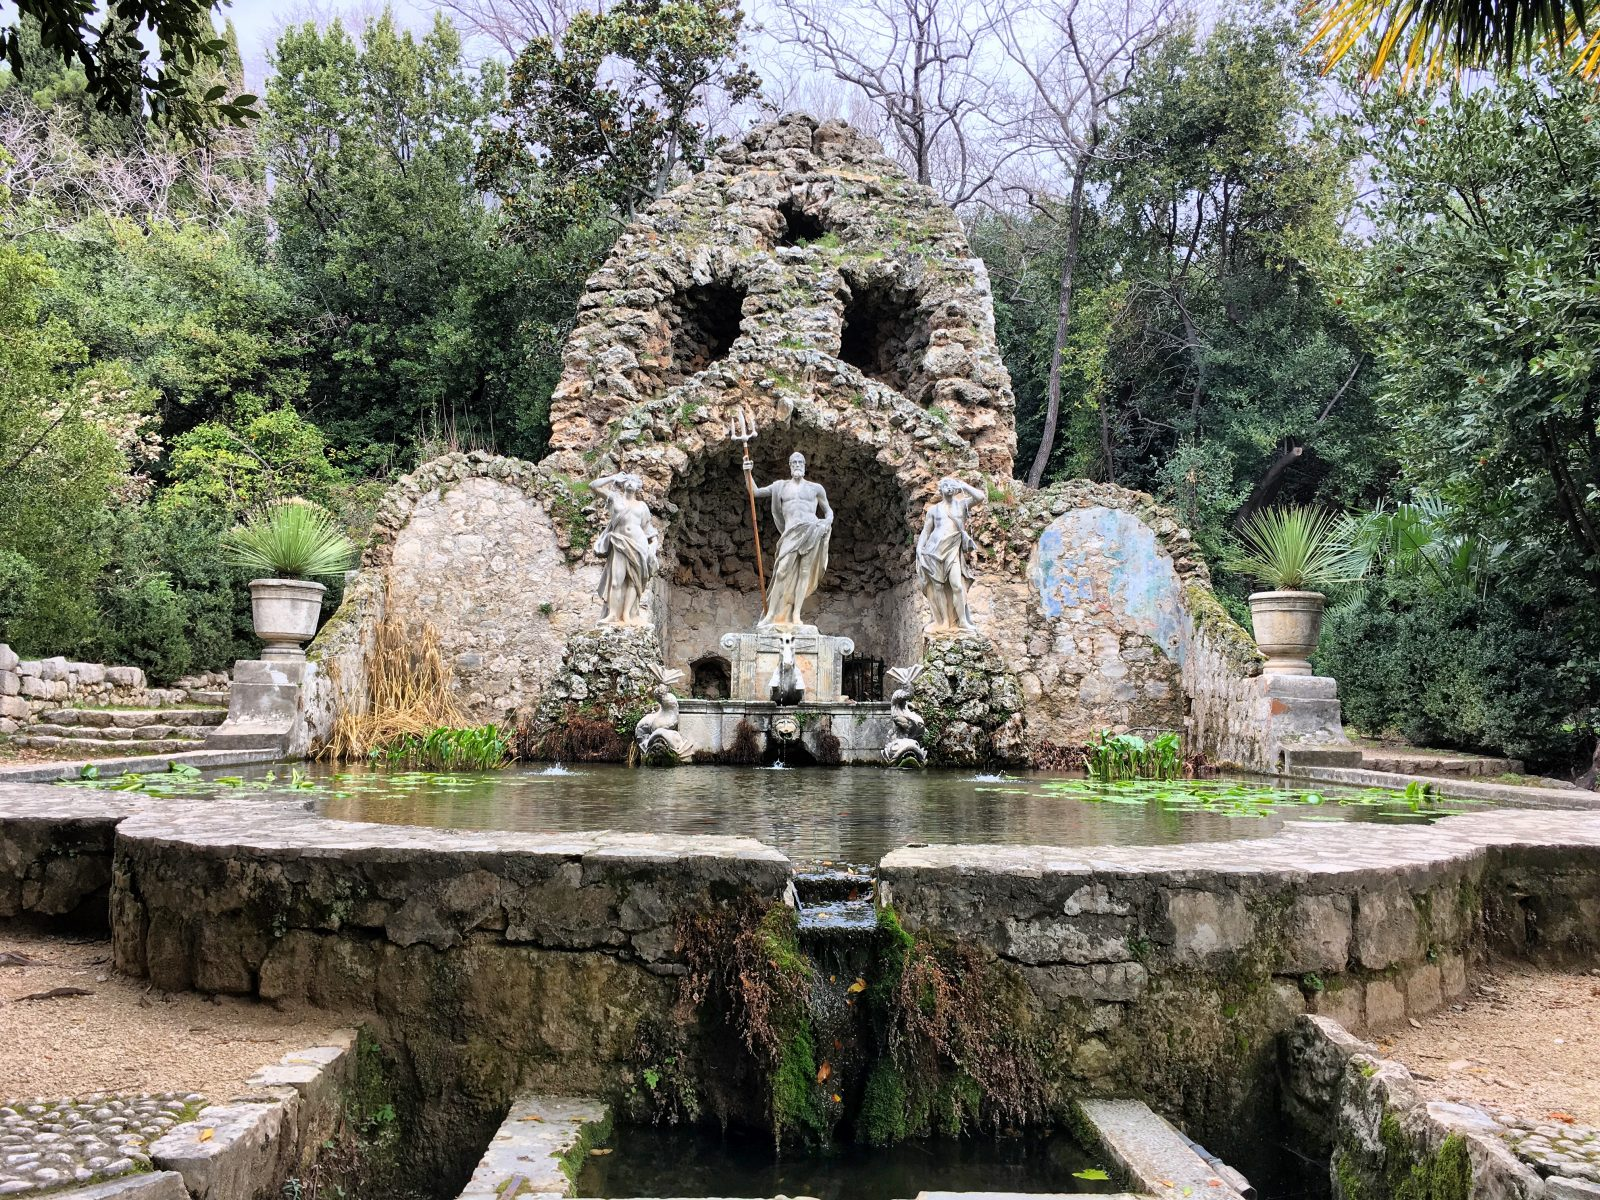 Trsteno Arboretum: The Palace Gardens of the Red Keep